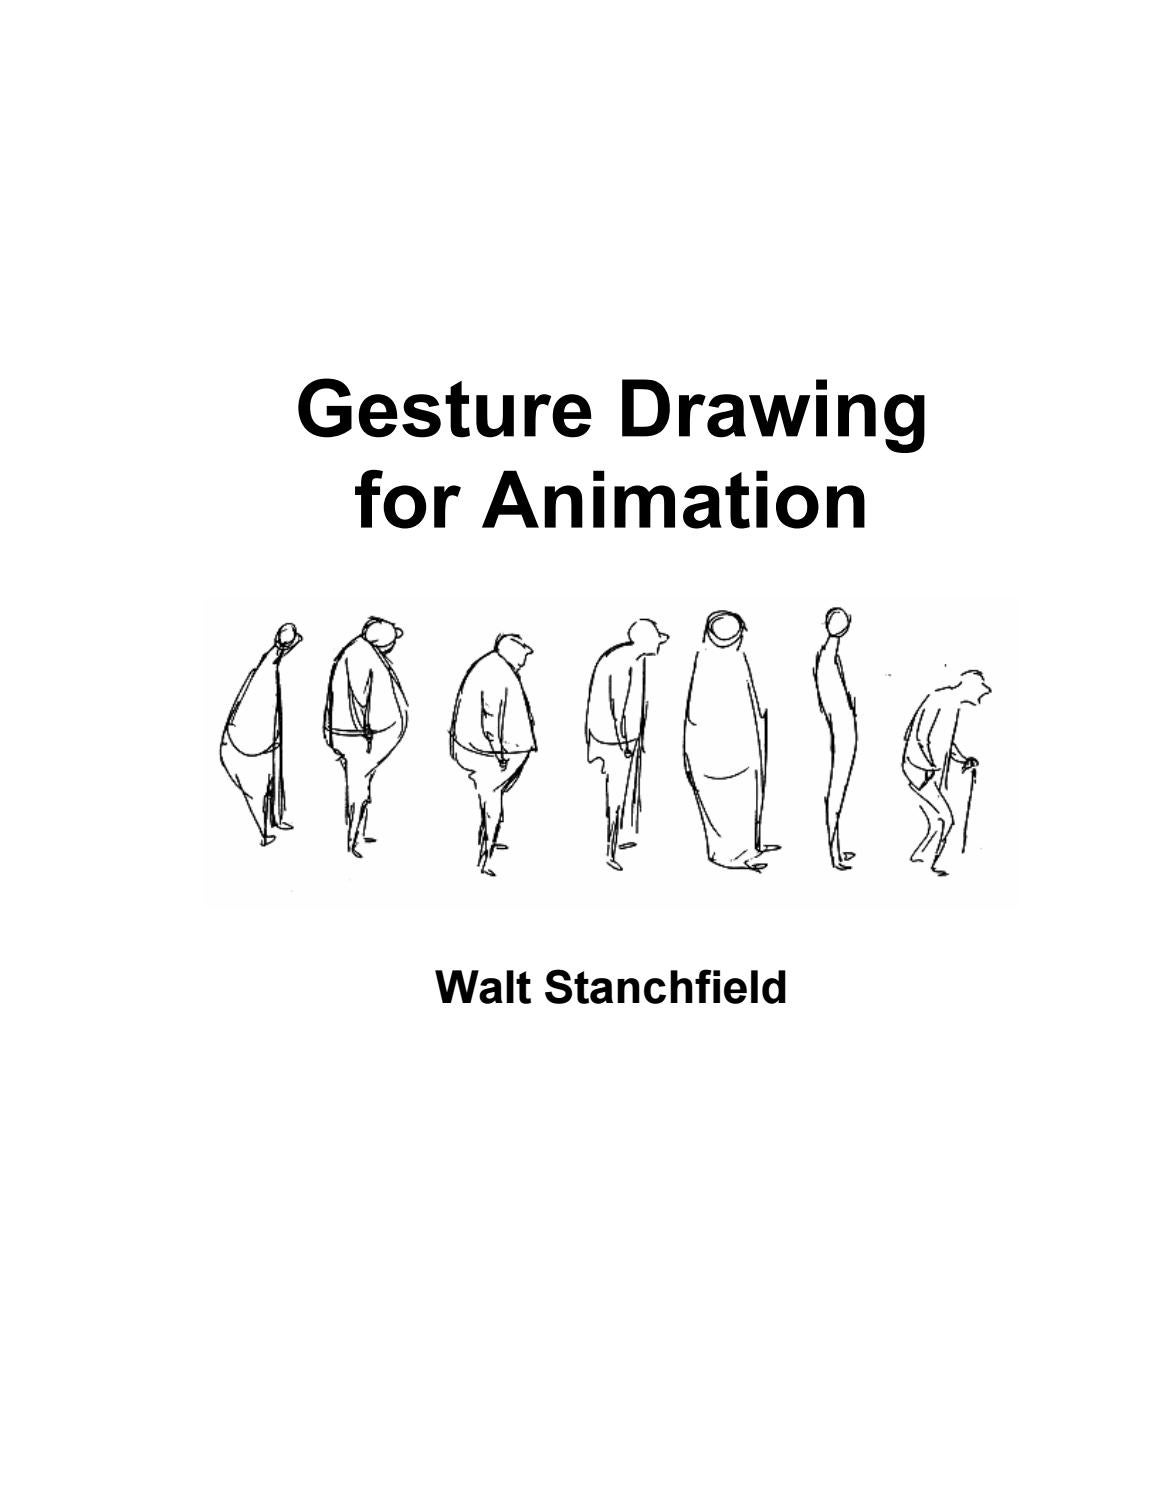 Gesture Drawing for Animation (Walt Stanchfield) by